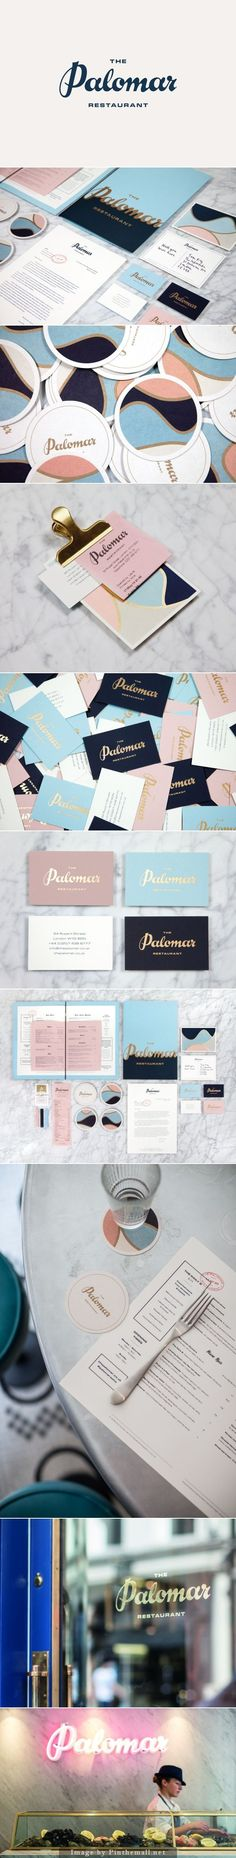 Corporate Design für Restaurant The Palomar / Goldprägung